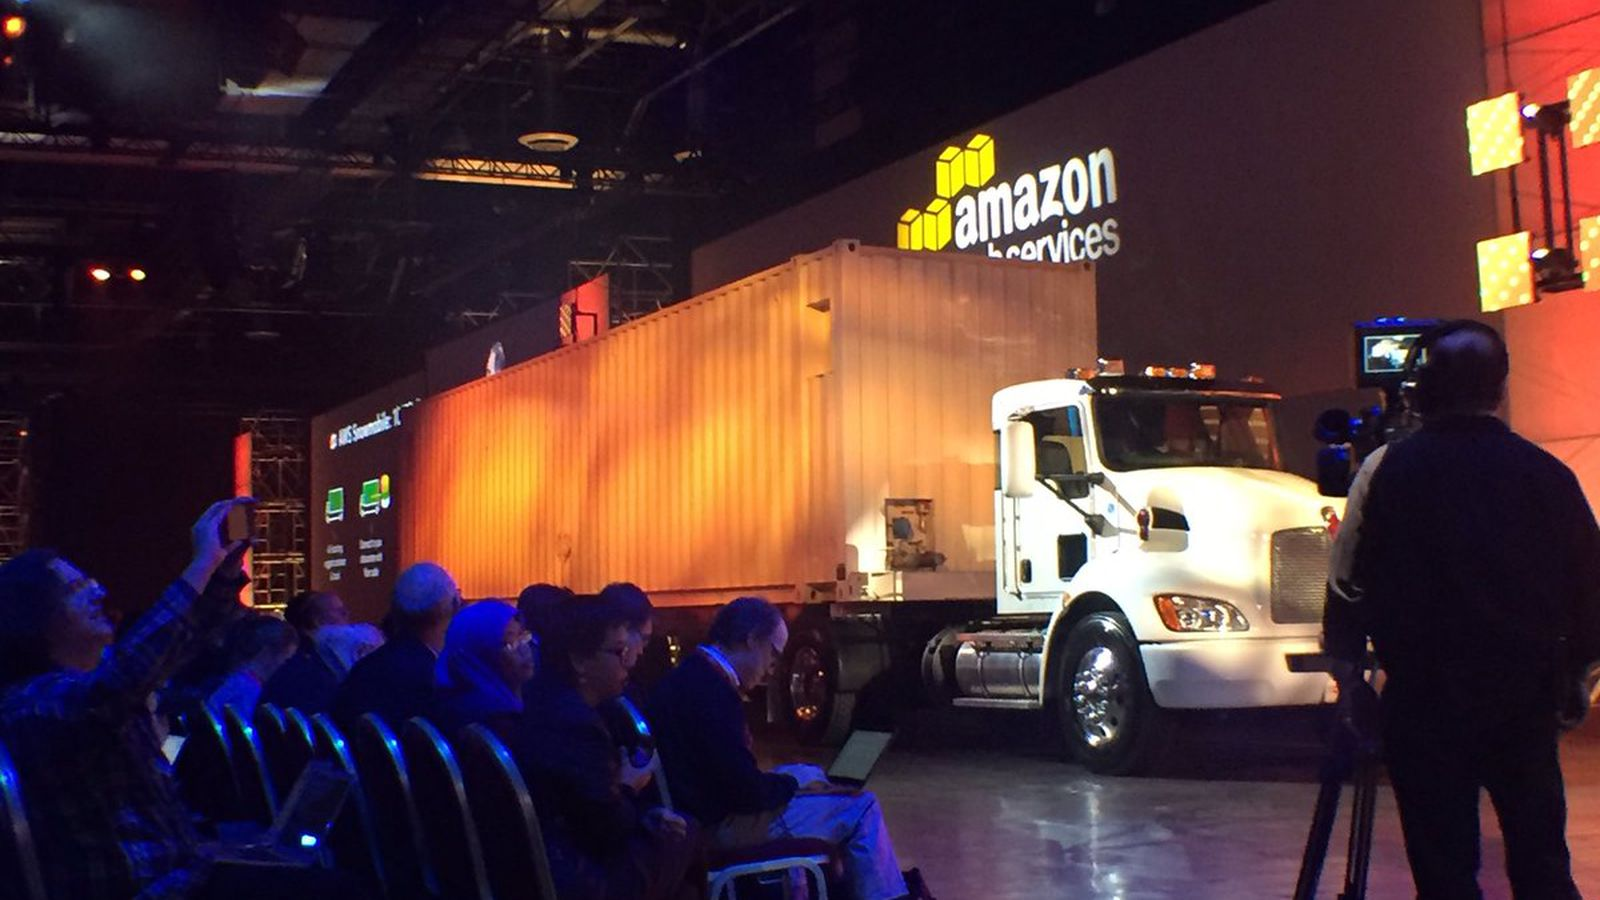 Amazon wants to ship your data to the cloud using a literal truck